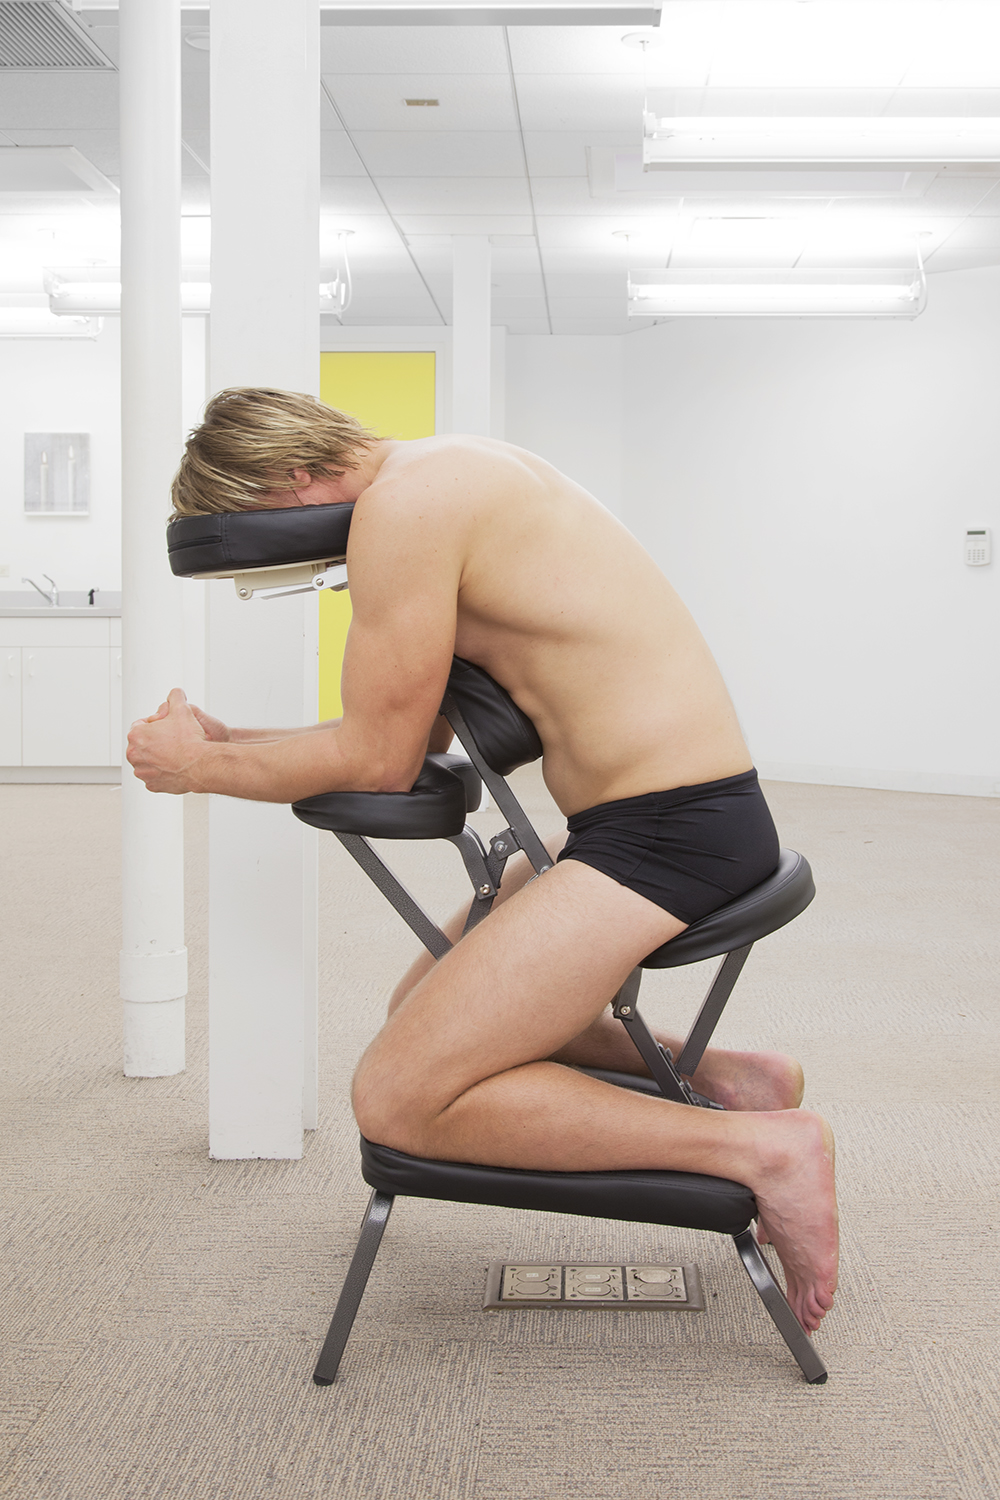 ALEX PERWEILER / ZACHARY SUSSKIND  On Relief (Stanislav, South Florida) , 2013 Man on massage chair Dimensions variable